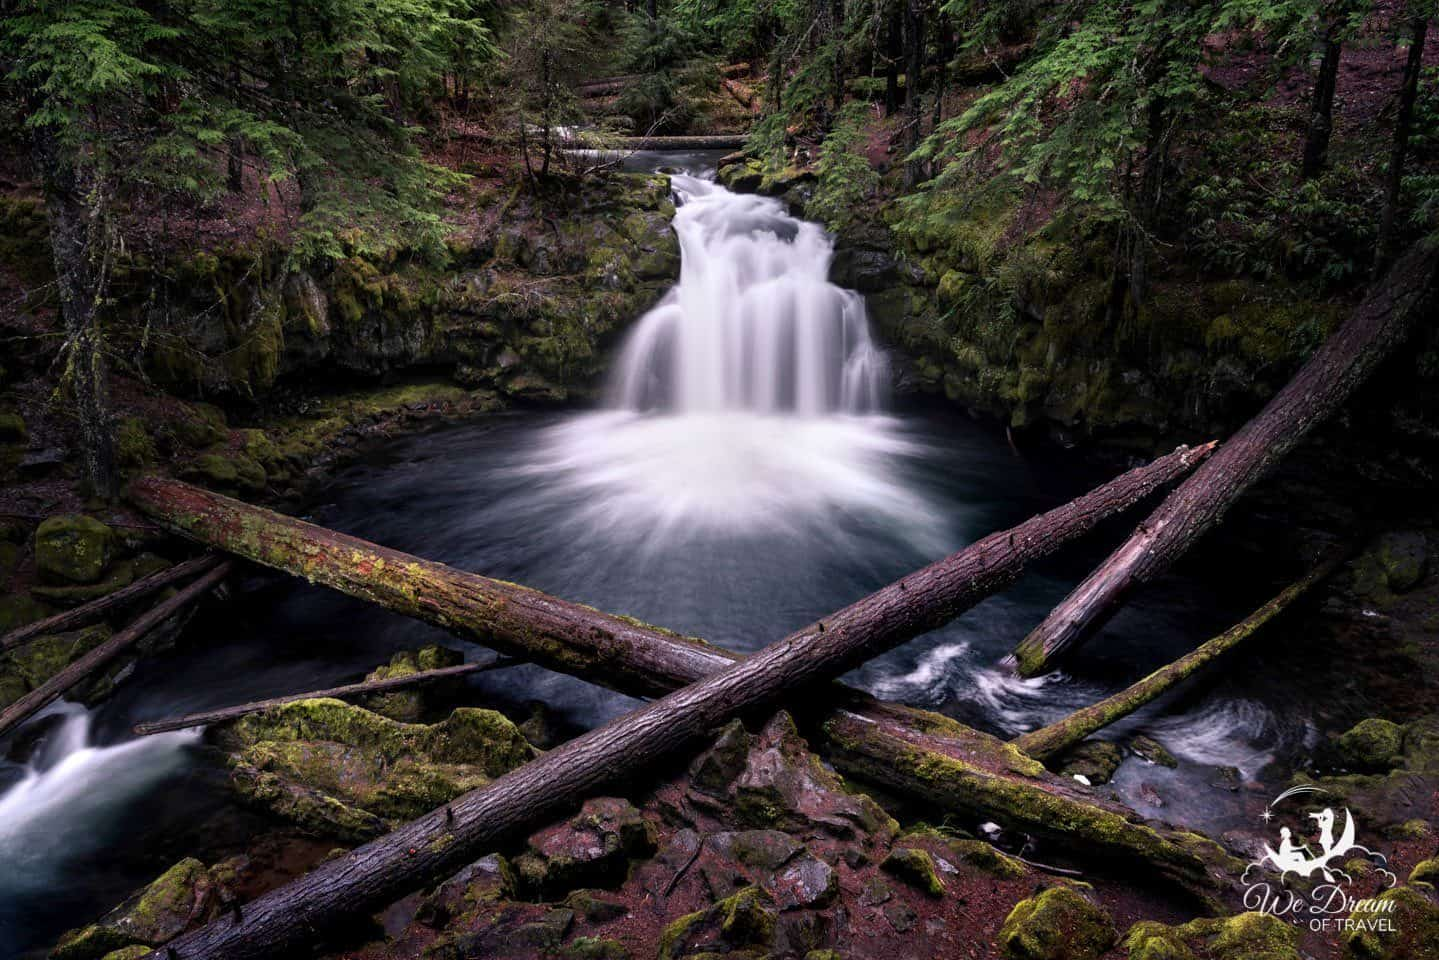 Whitehorse Falls is a small but picturesque waterfall in Umpqua National Forest